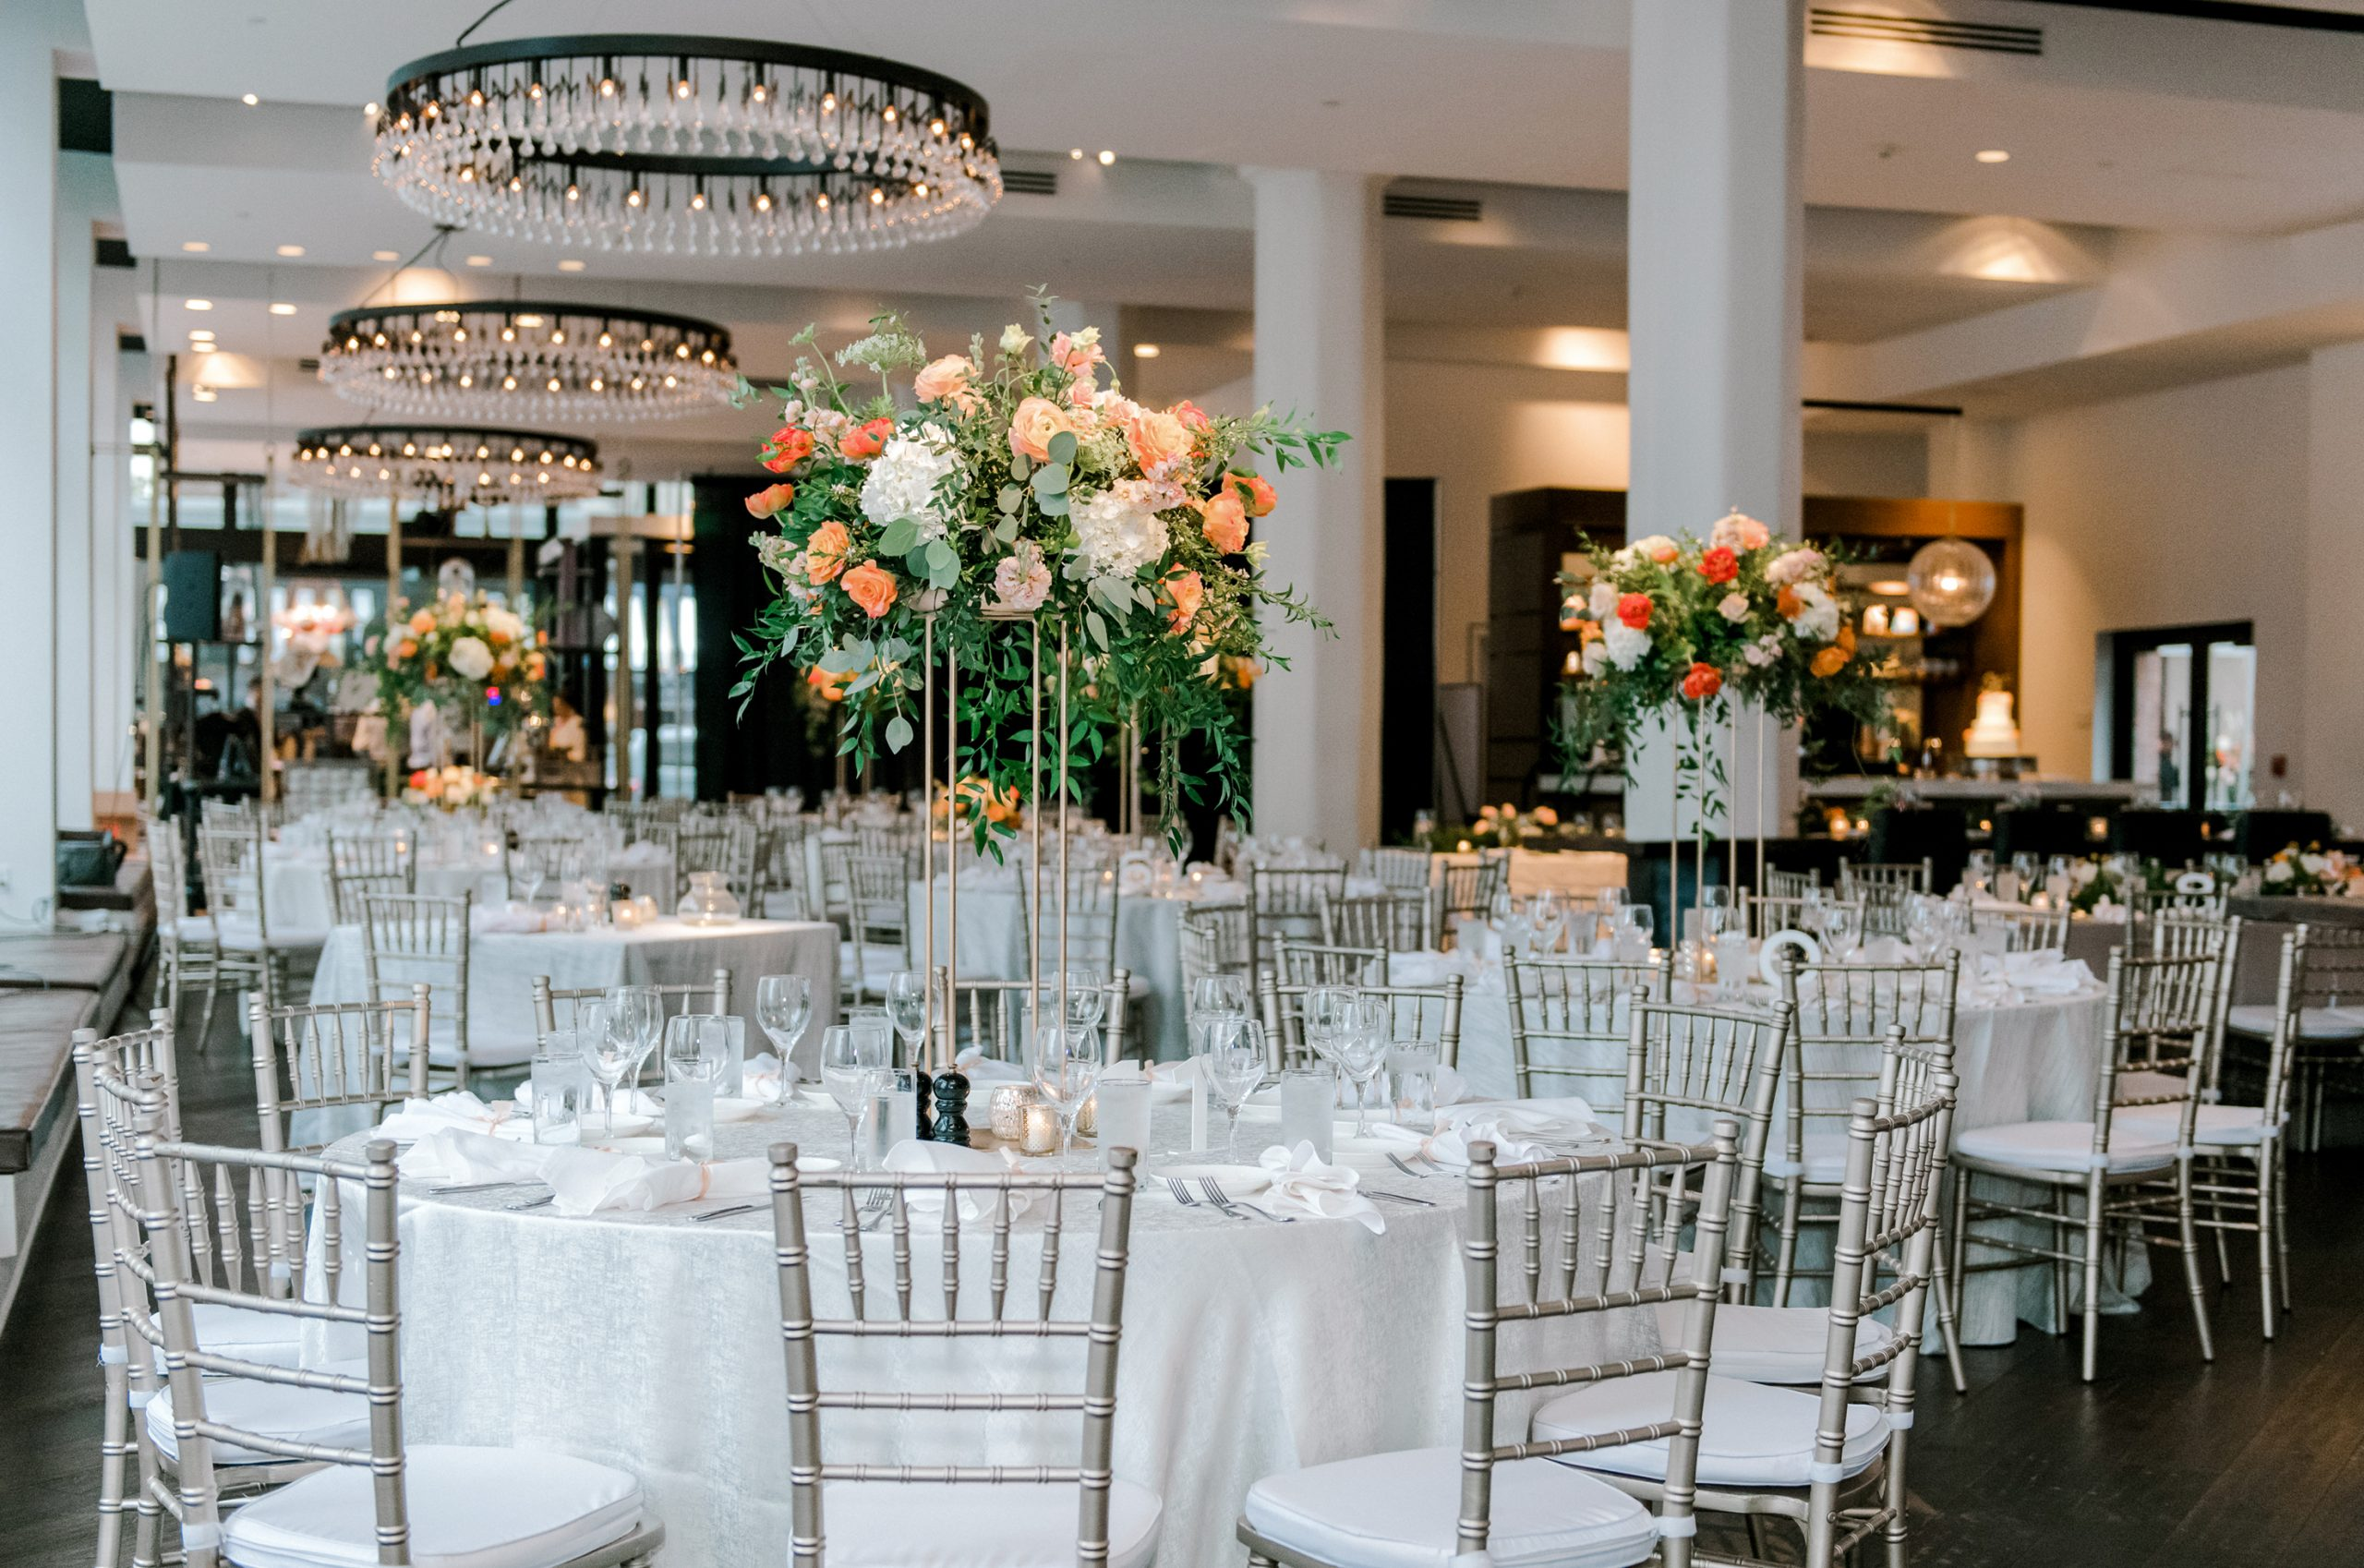 Tall centerpieces in a natural style with mixed foliage and spring flowers for a chic urban wedding reception at Hotel Covington.